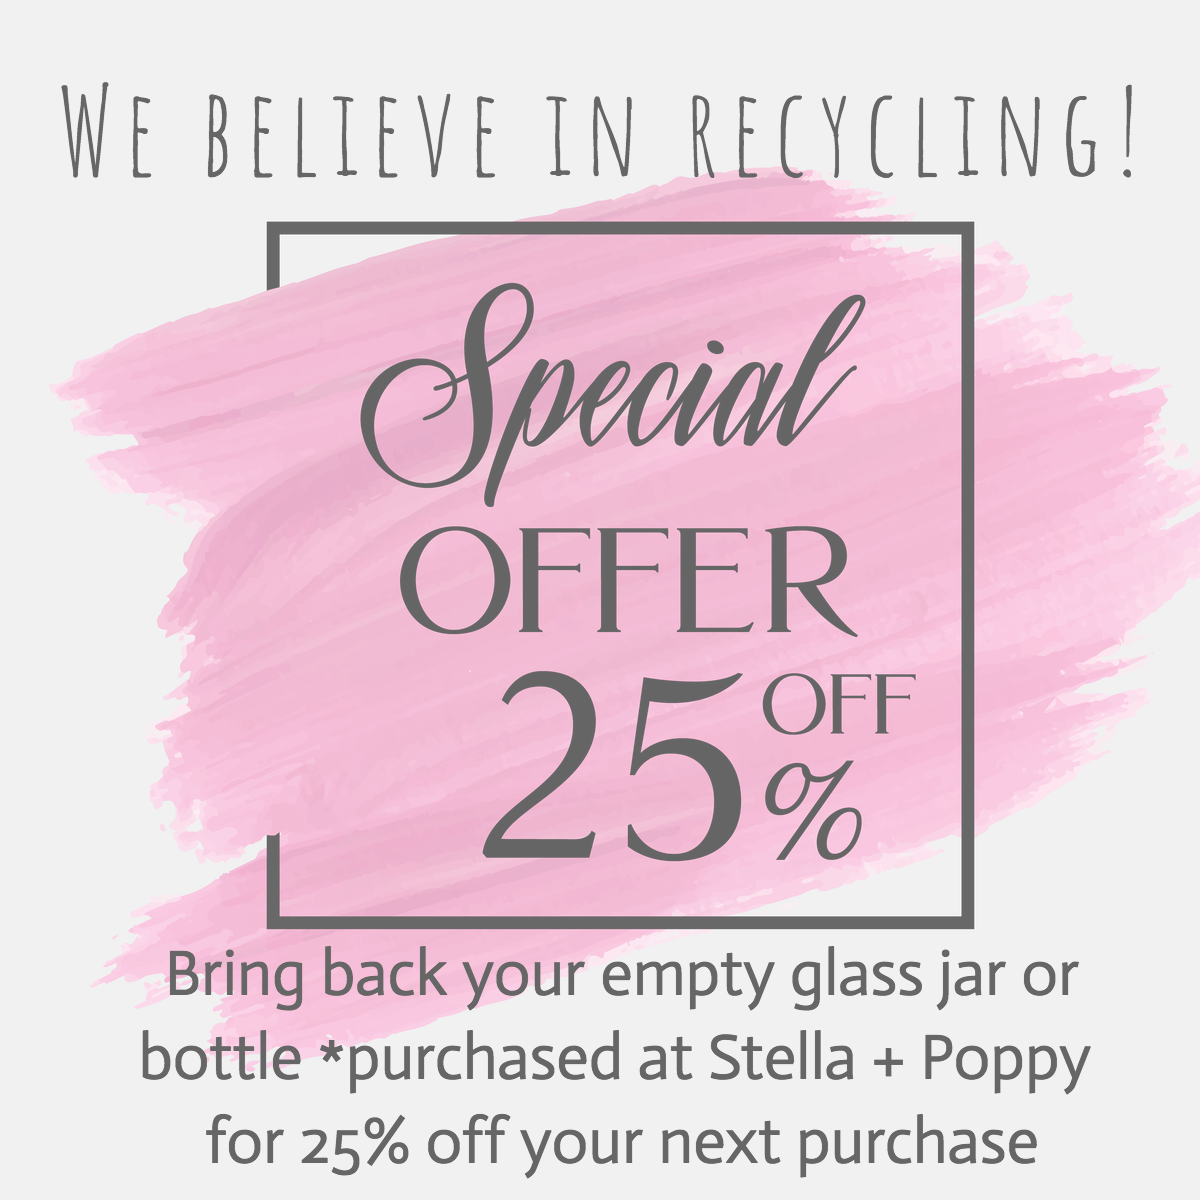 Recycling, Stella + Poppy and Granite Falls